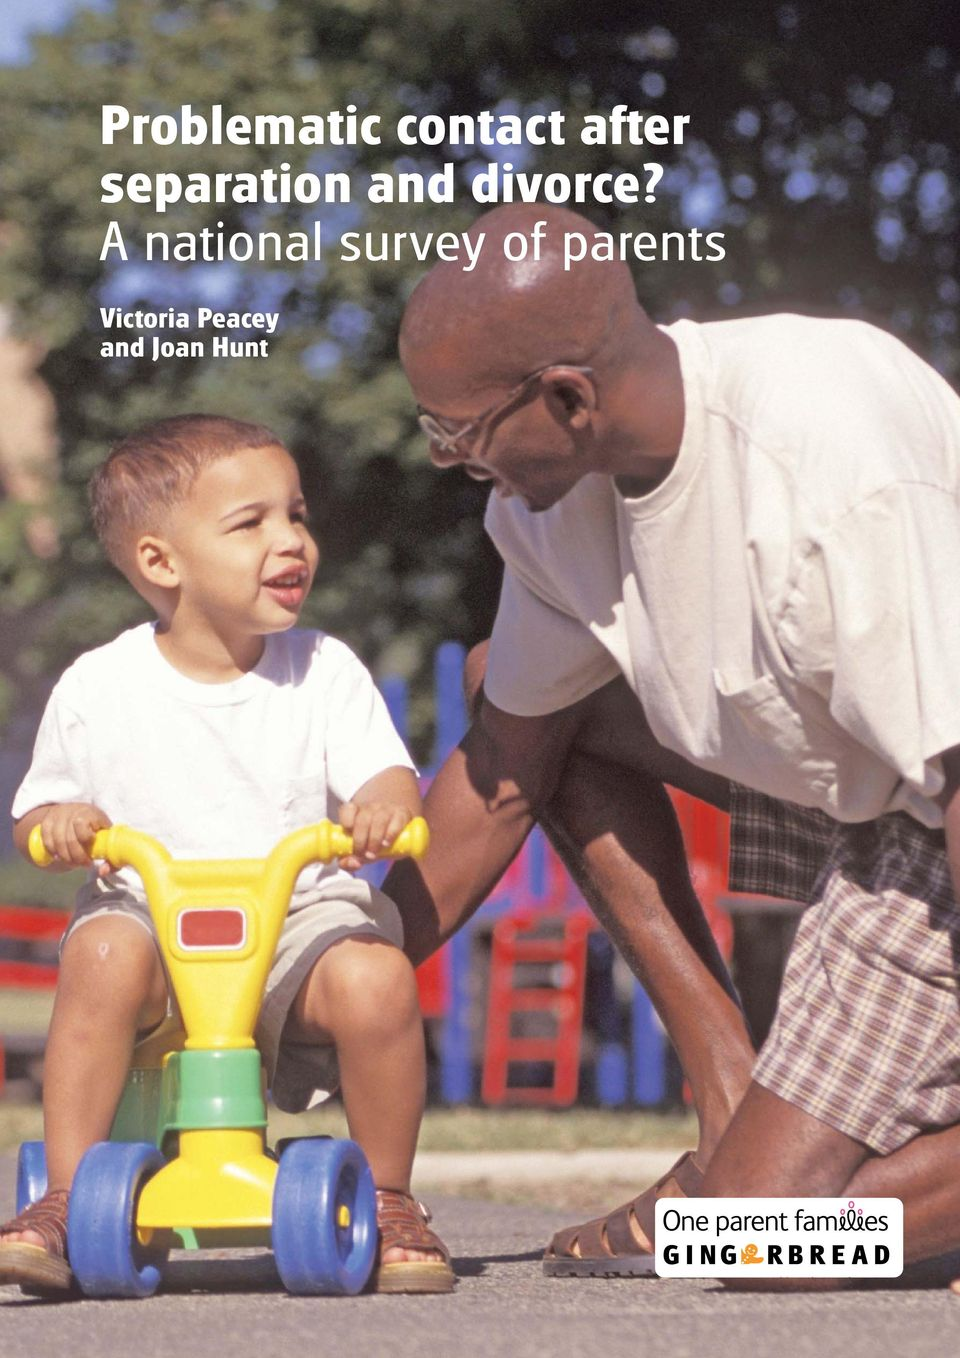 A national survey of